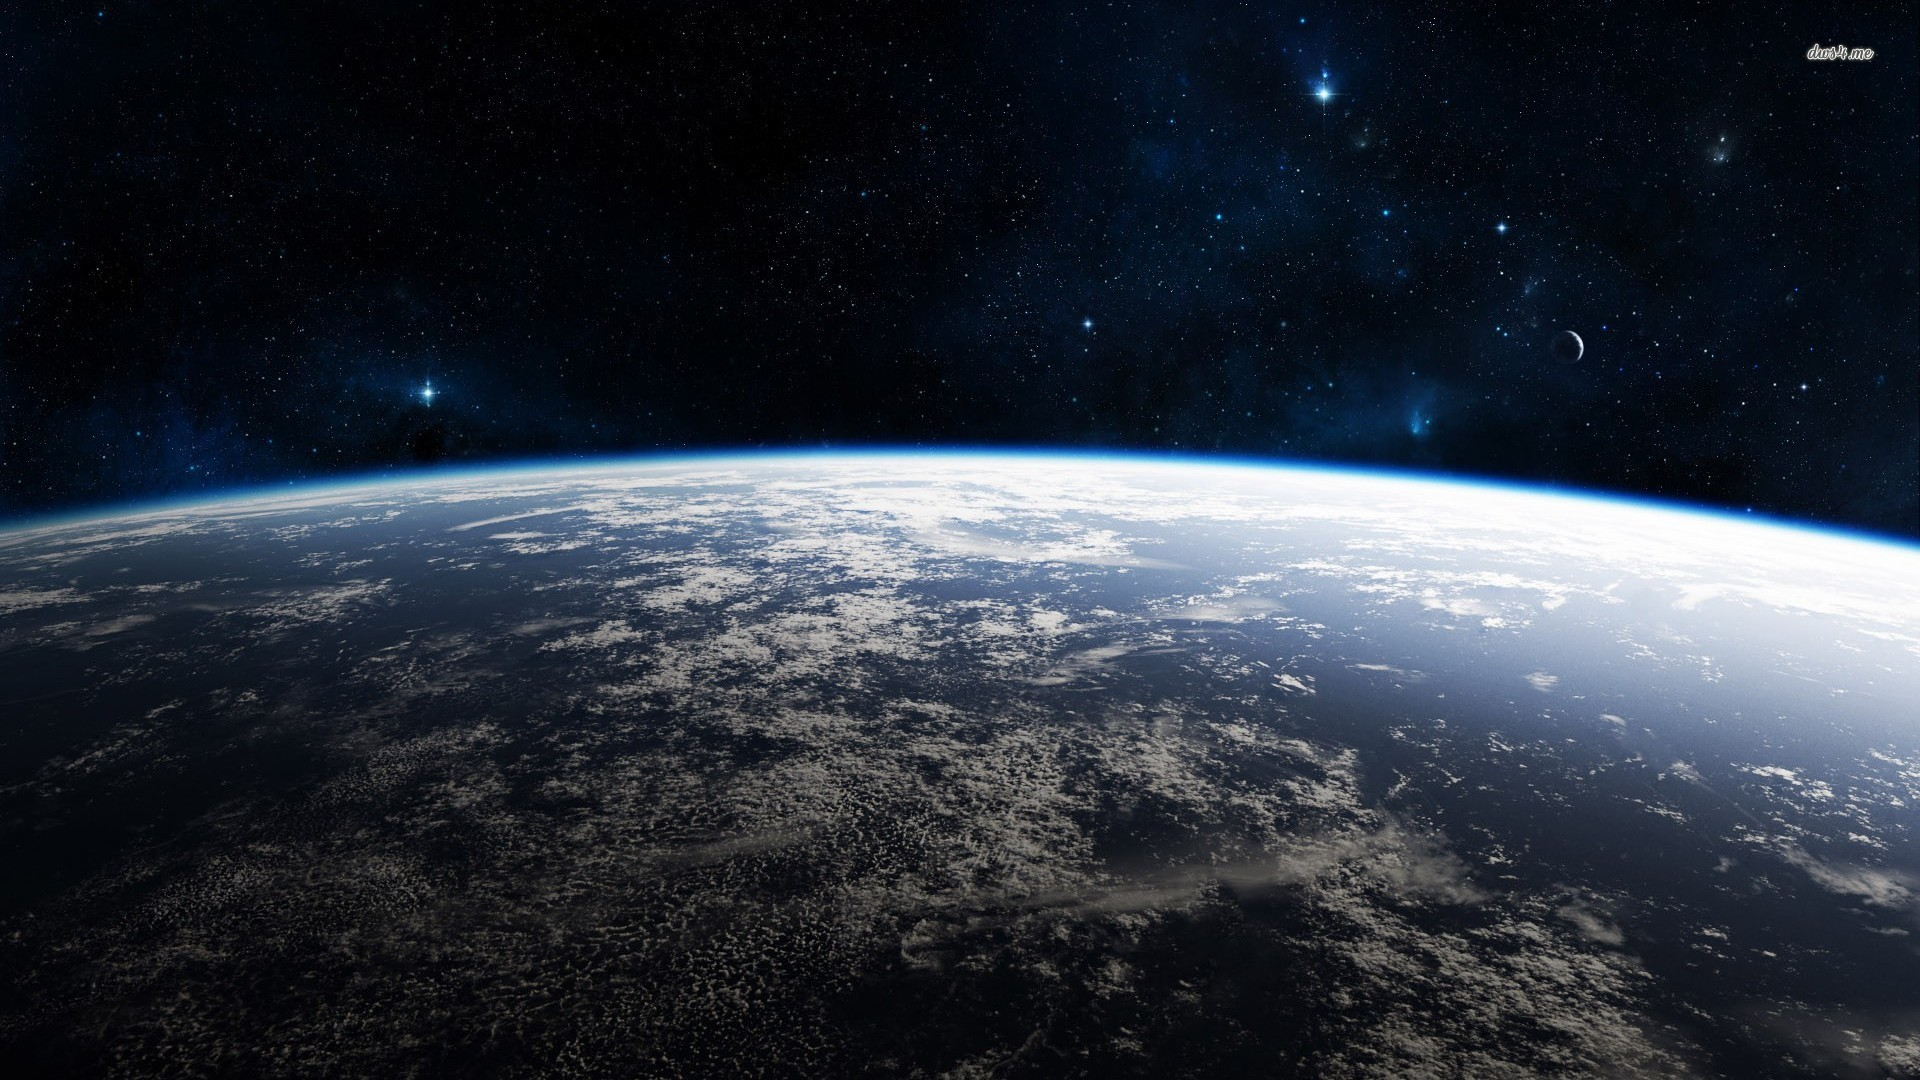 Earth Surface From Space Hd Wallpaper | Wallpaper List